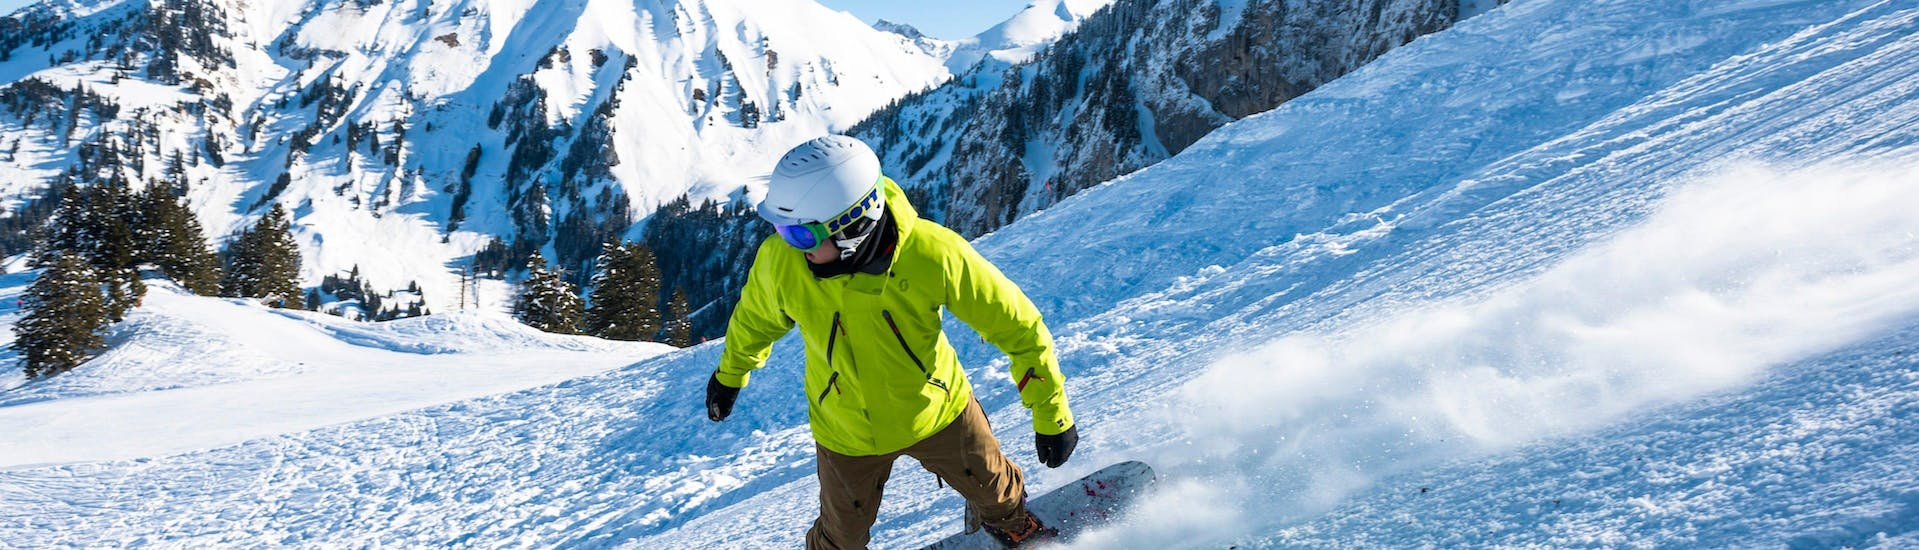 A snowboarder is going down a slope with confidence thanks to his Snowboarding Lessons (6-15 years) - 4 lessons - All Levels with the swiss ski school Charmey.